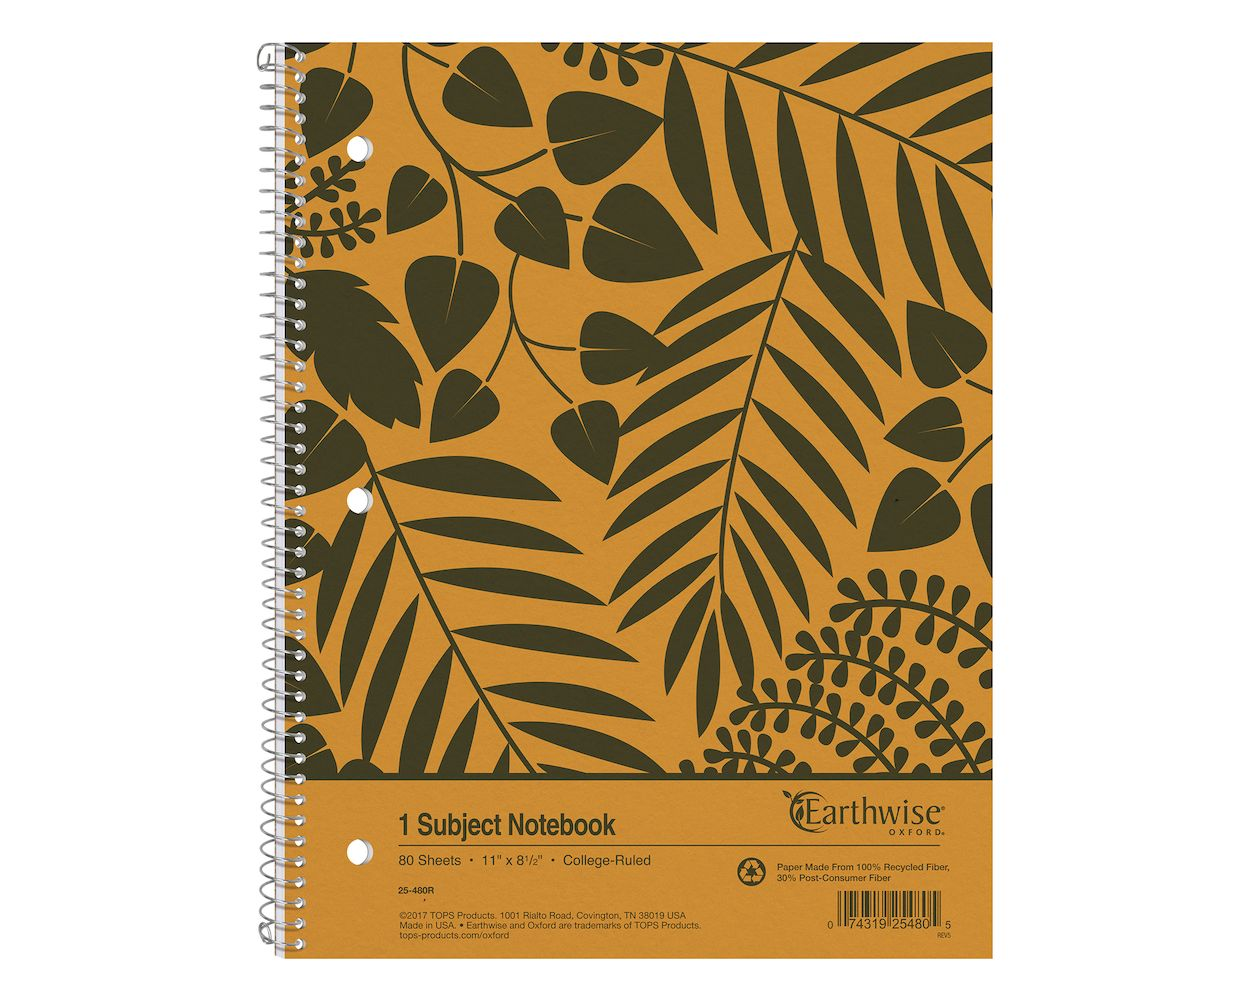 150 SH WE Earthwise by Oxford Small Size Notebook 9 1//2 x 6 College//Medium